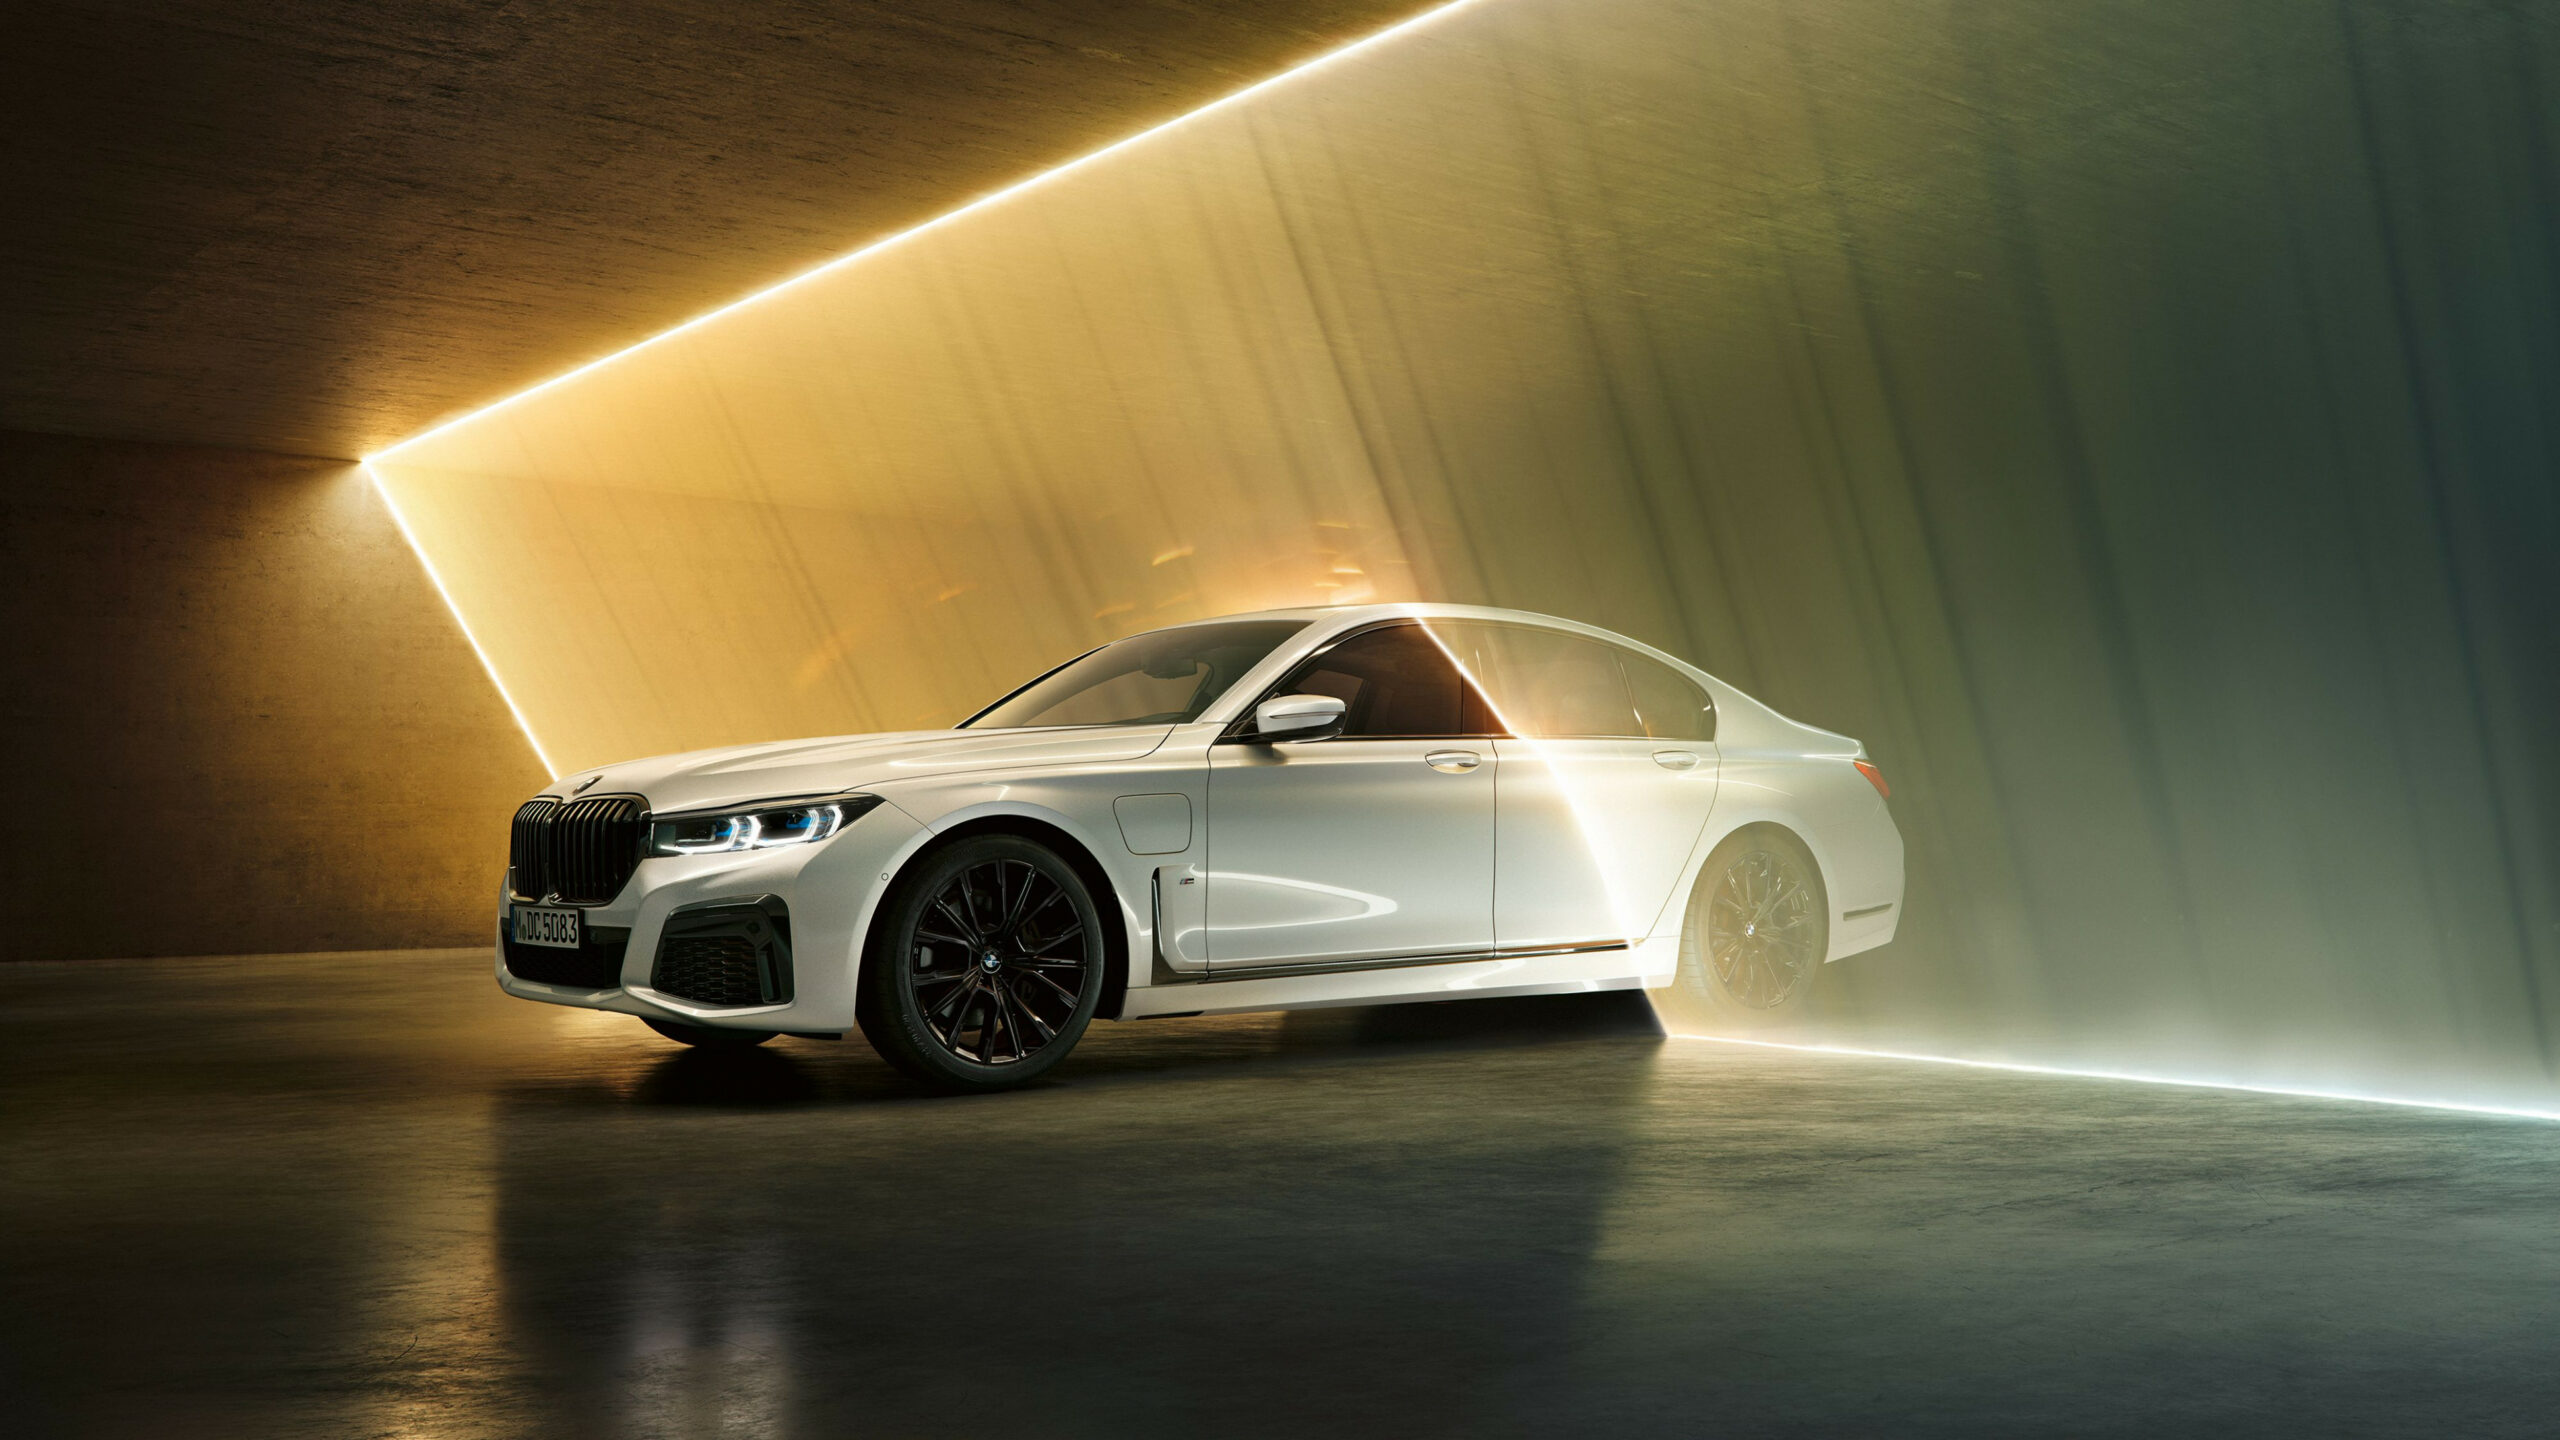 Cool 12 BMW Wallpapers - Top Free Cool 12 BMW Backgrounds ..